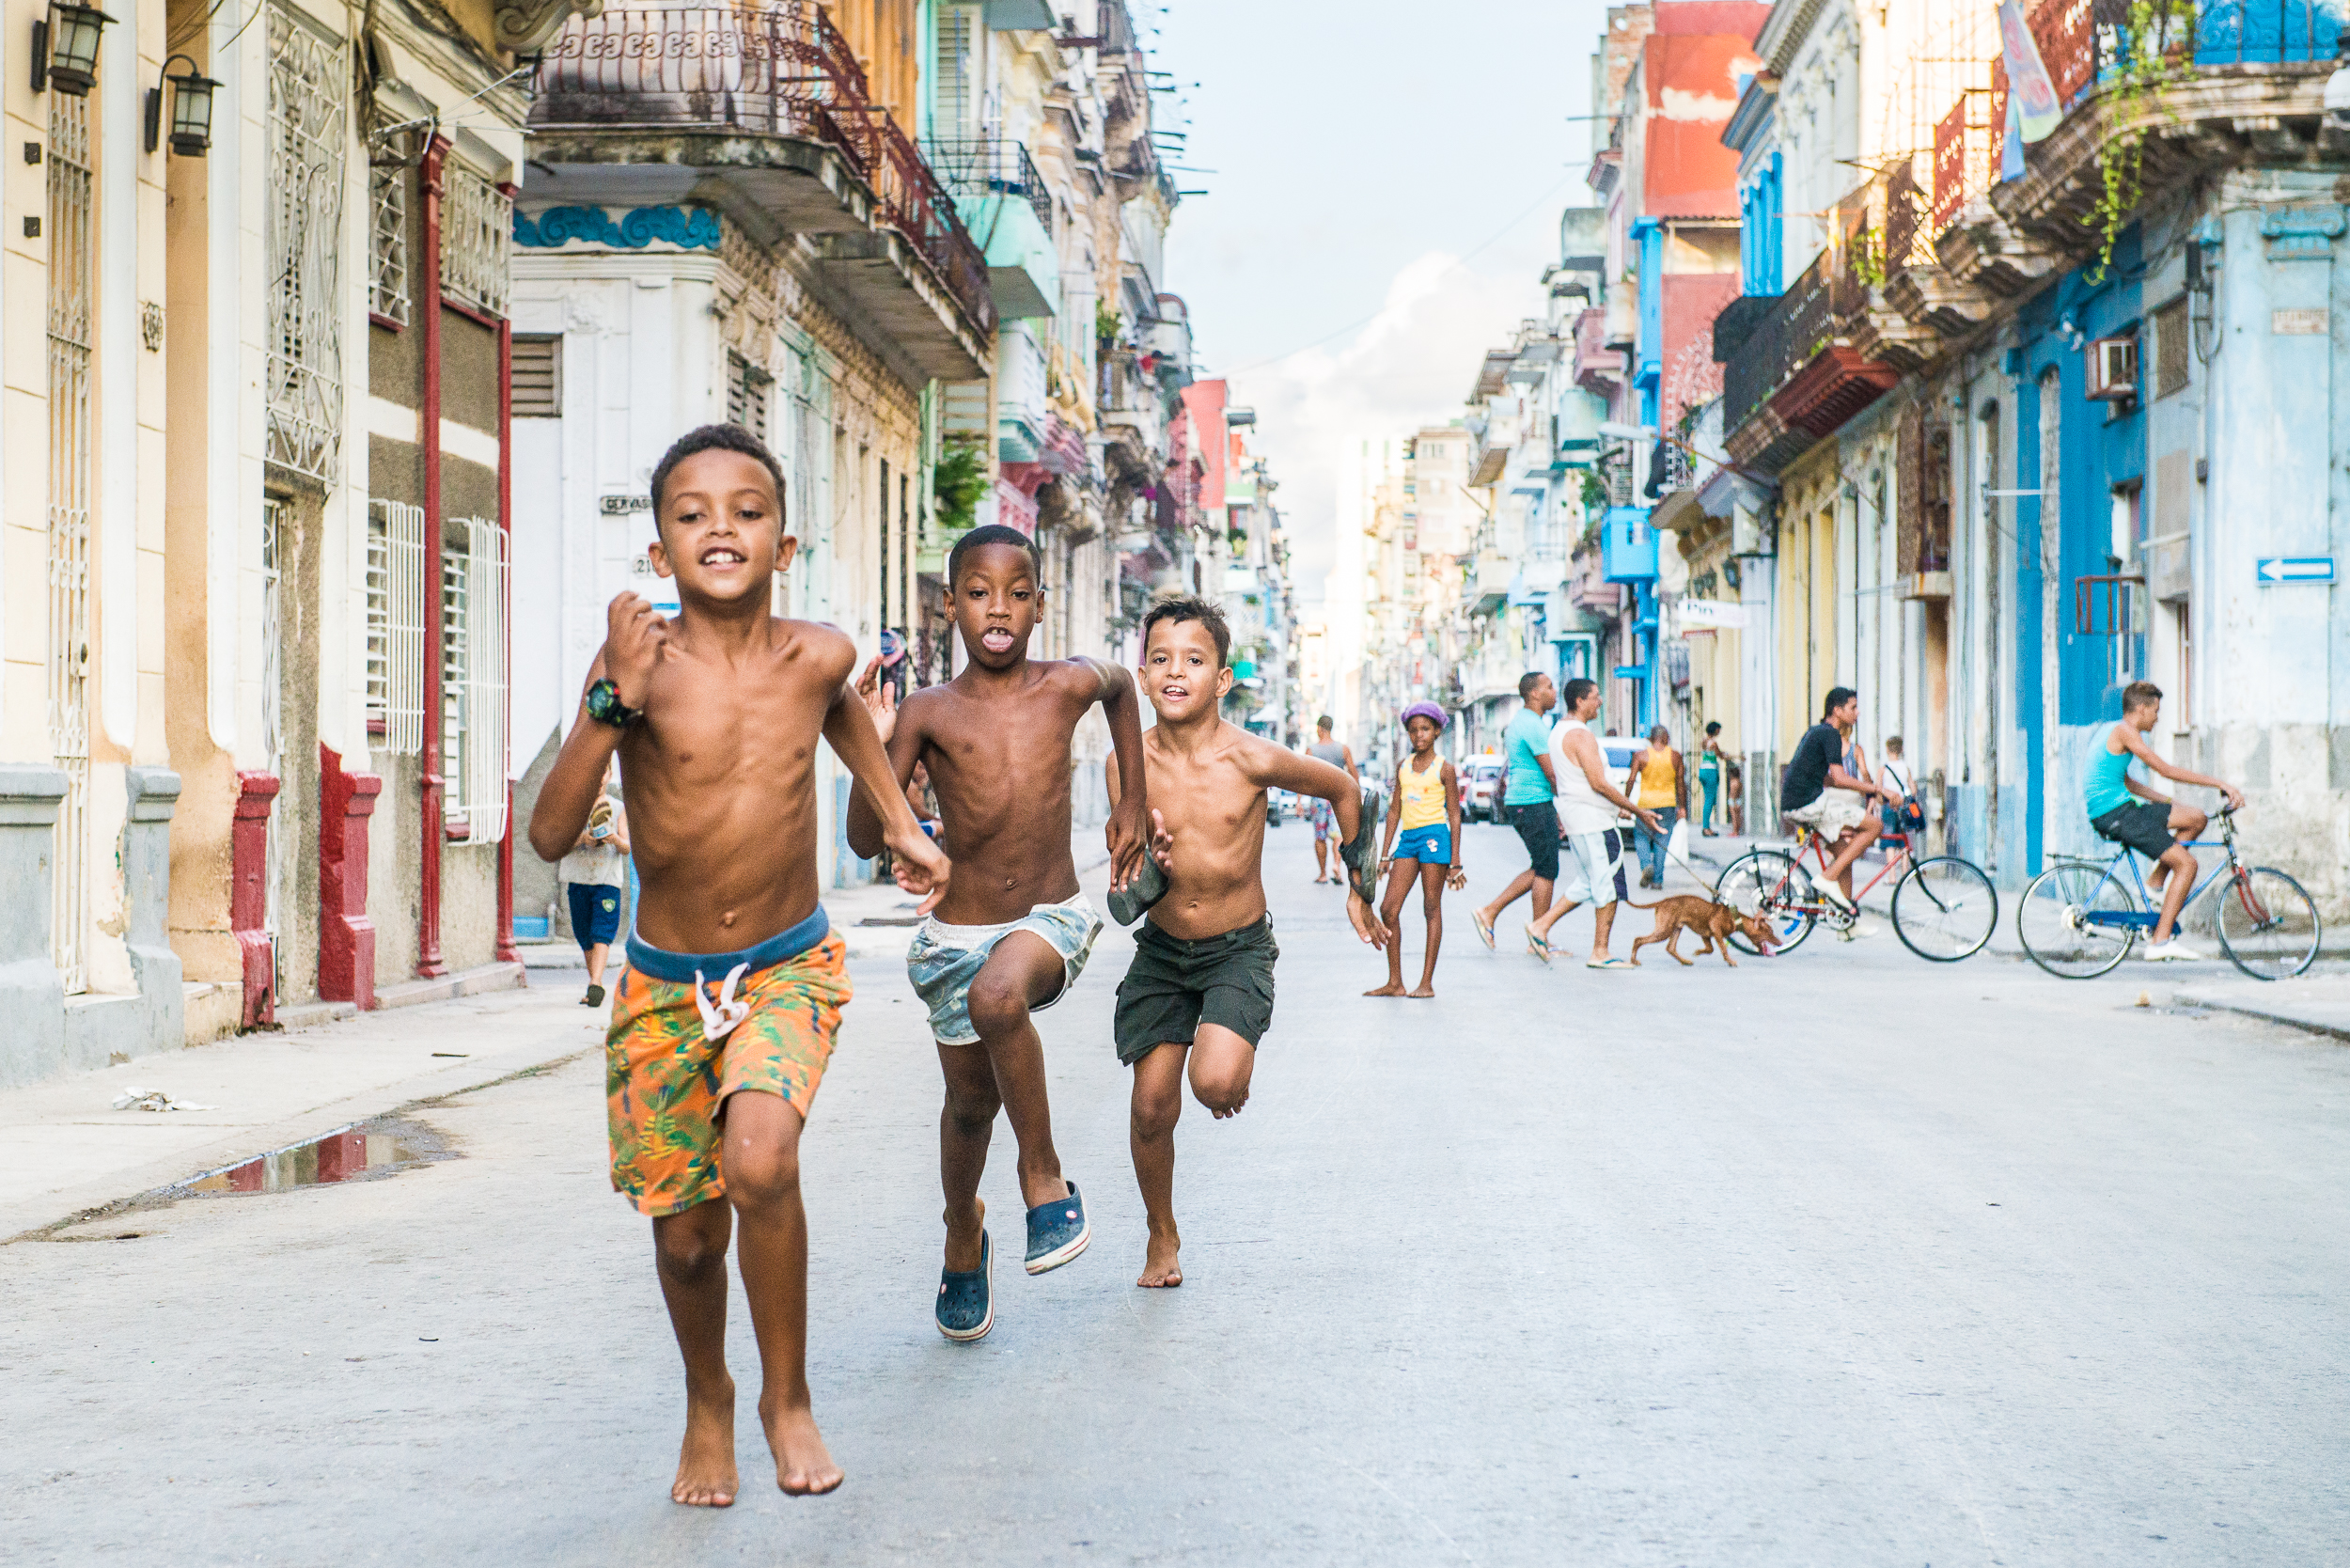 Kids running Cuba - Travel - Photo credit Nicola Bailey.jpg